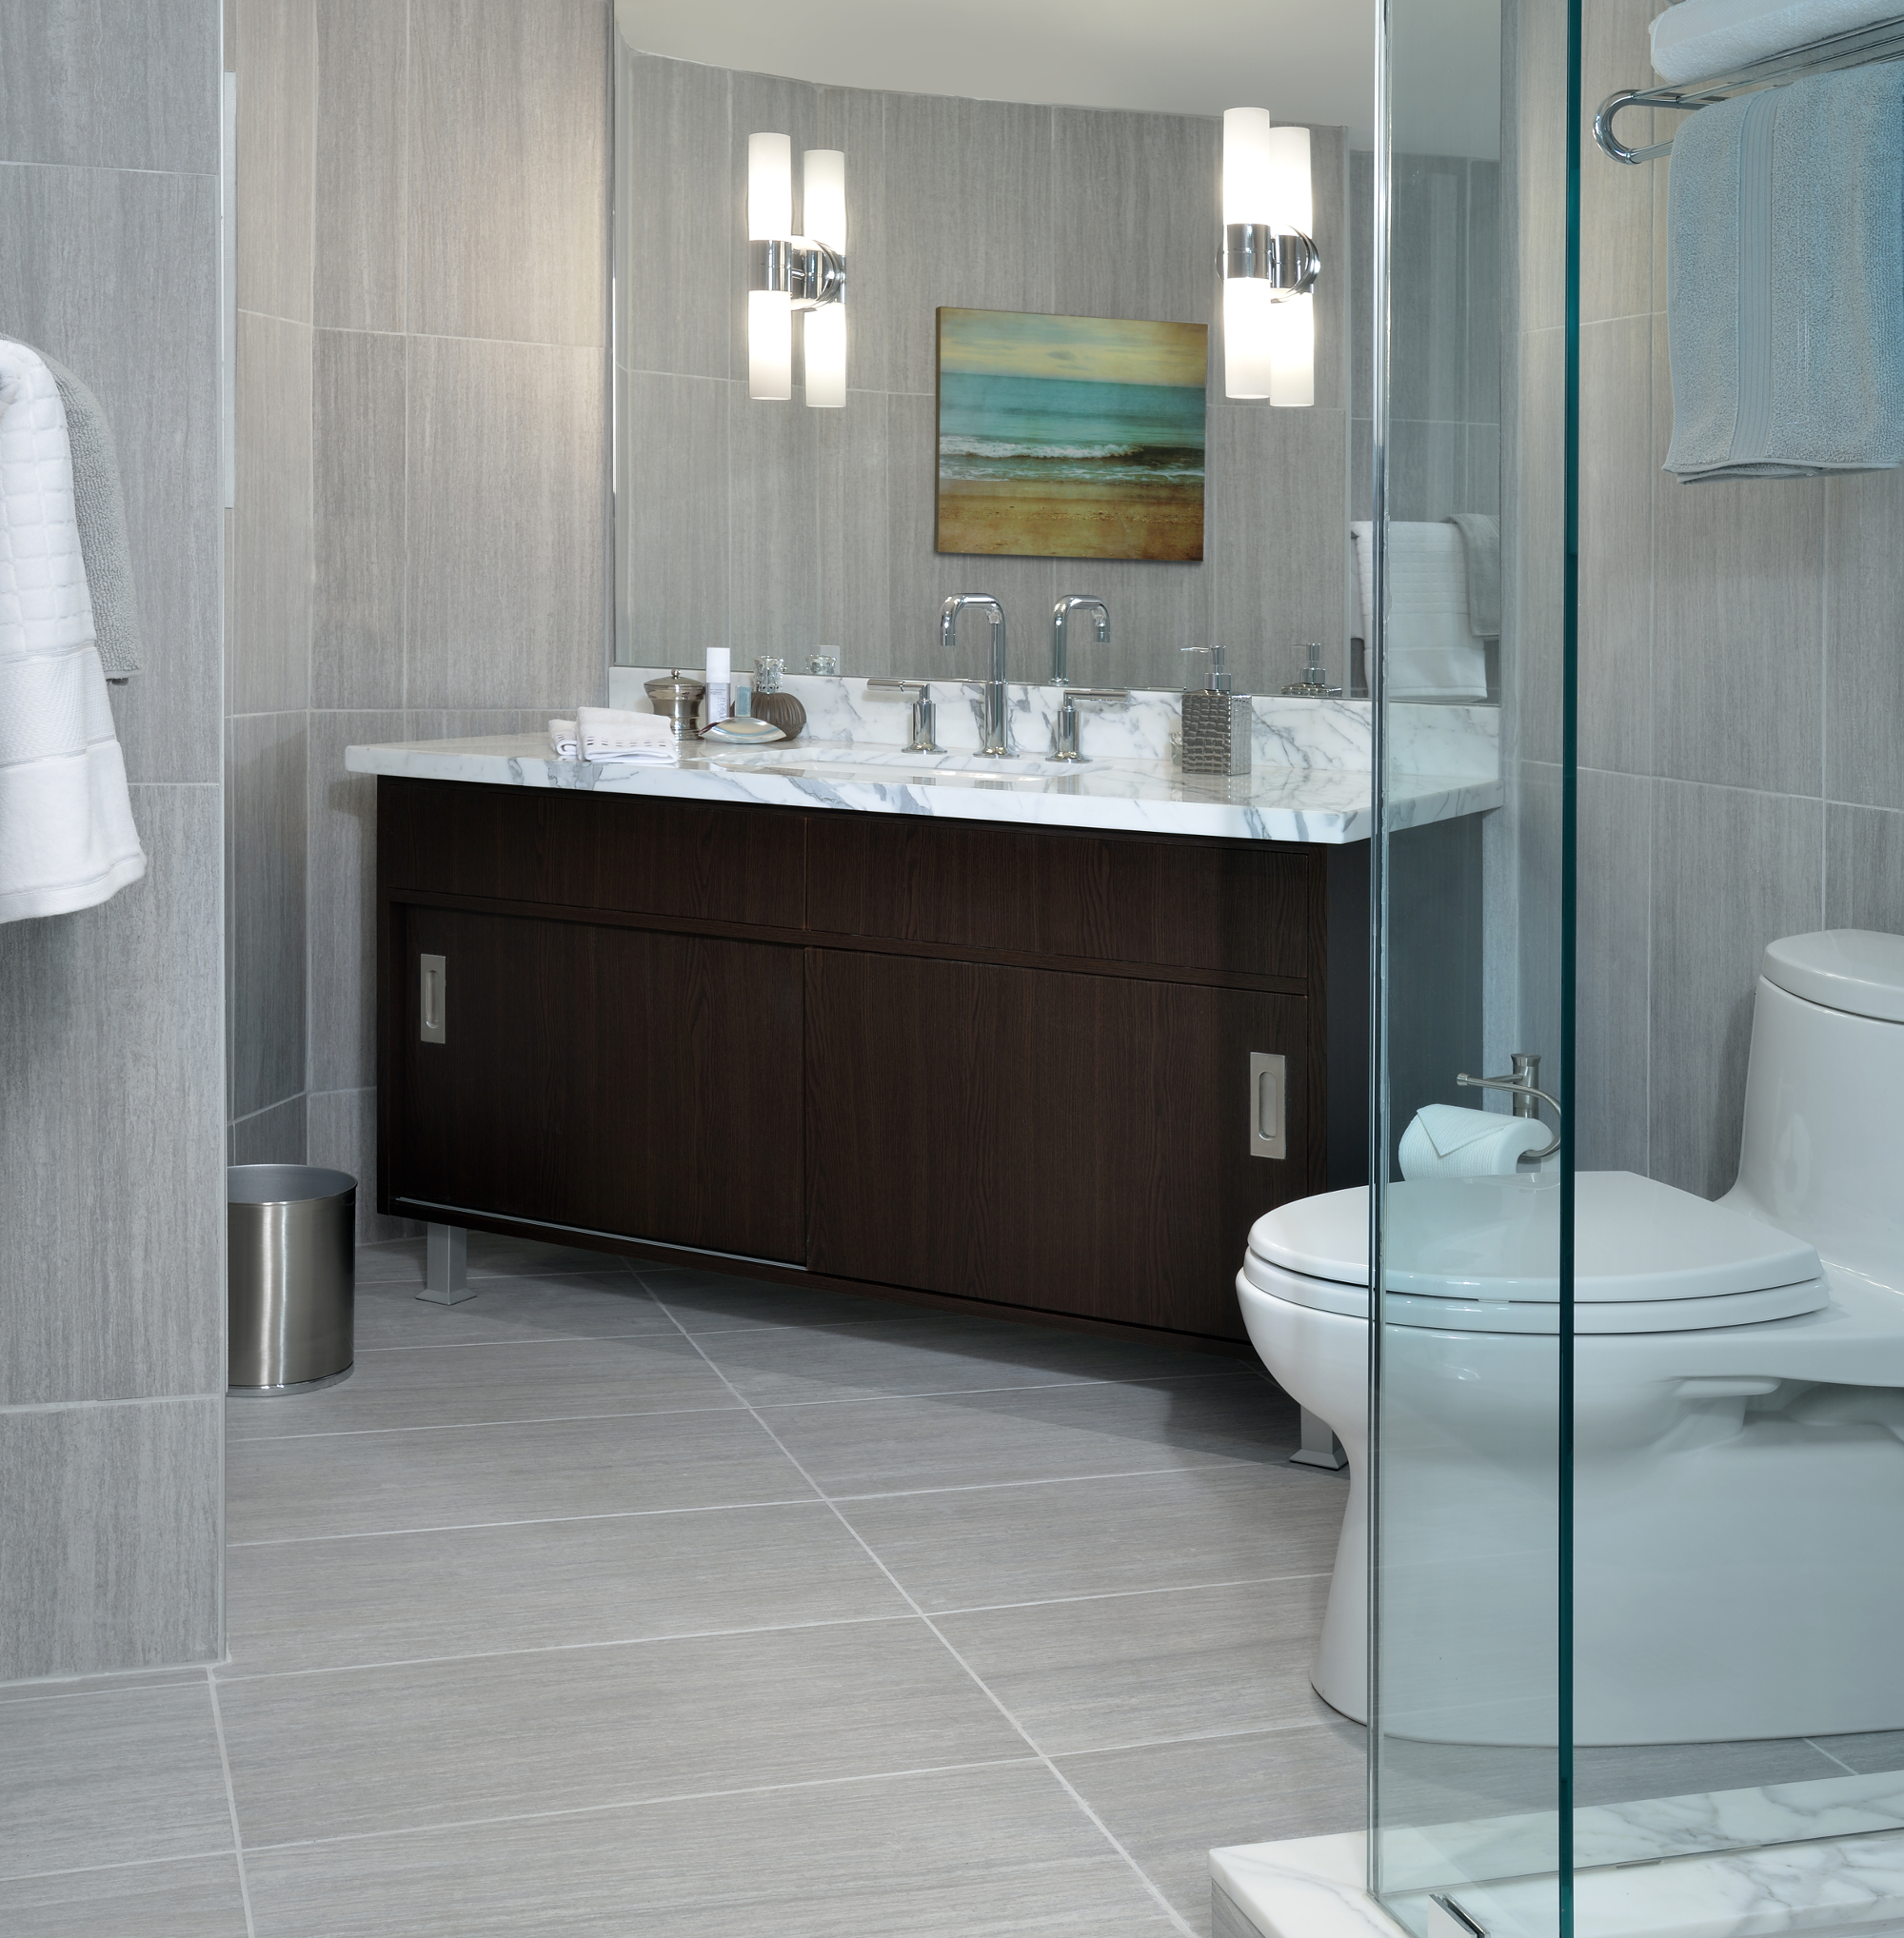 Bathroom renovation budget breakdown home trends magazine for Best bathroom renos